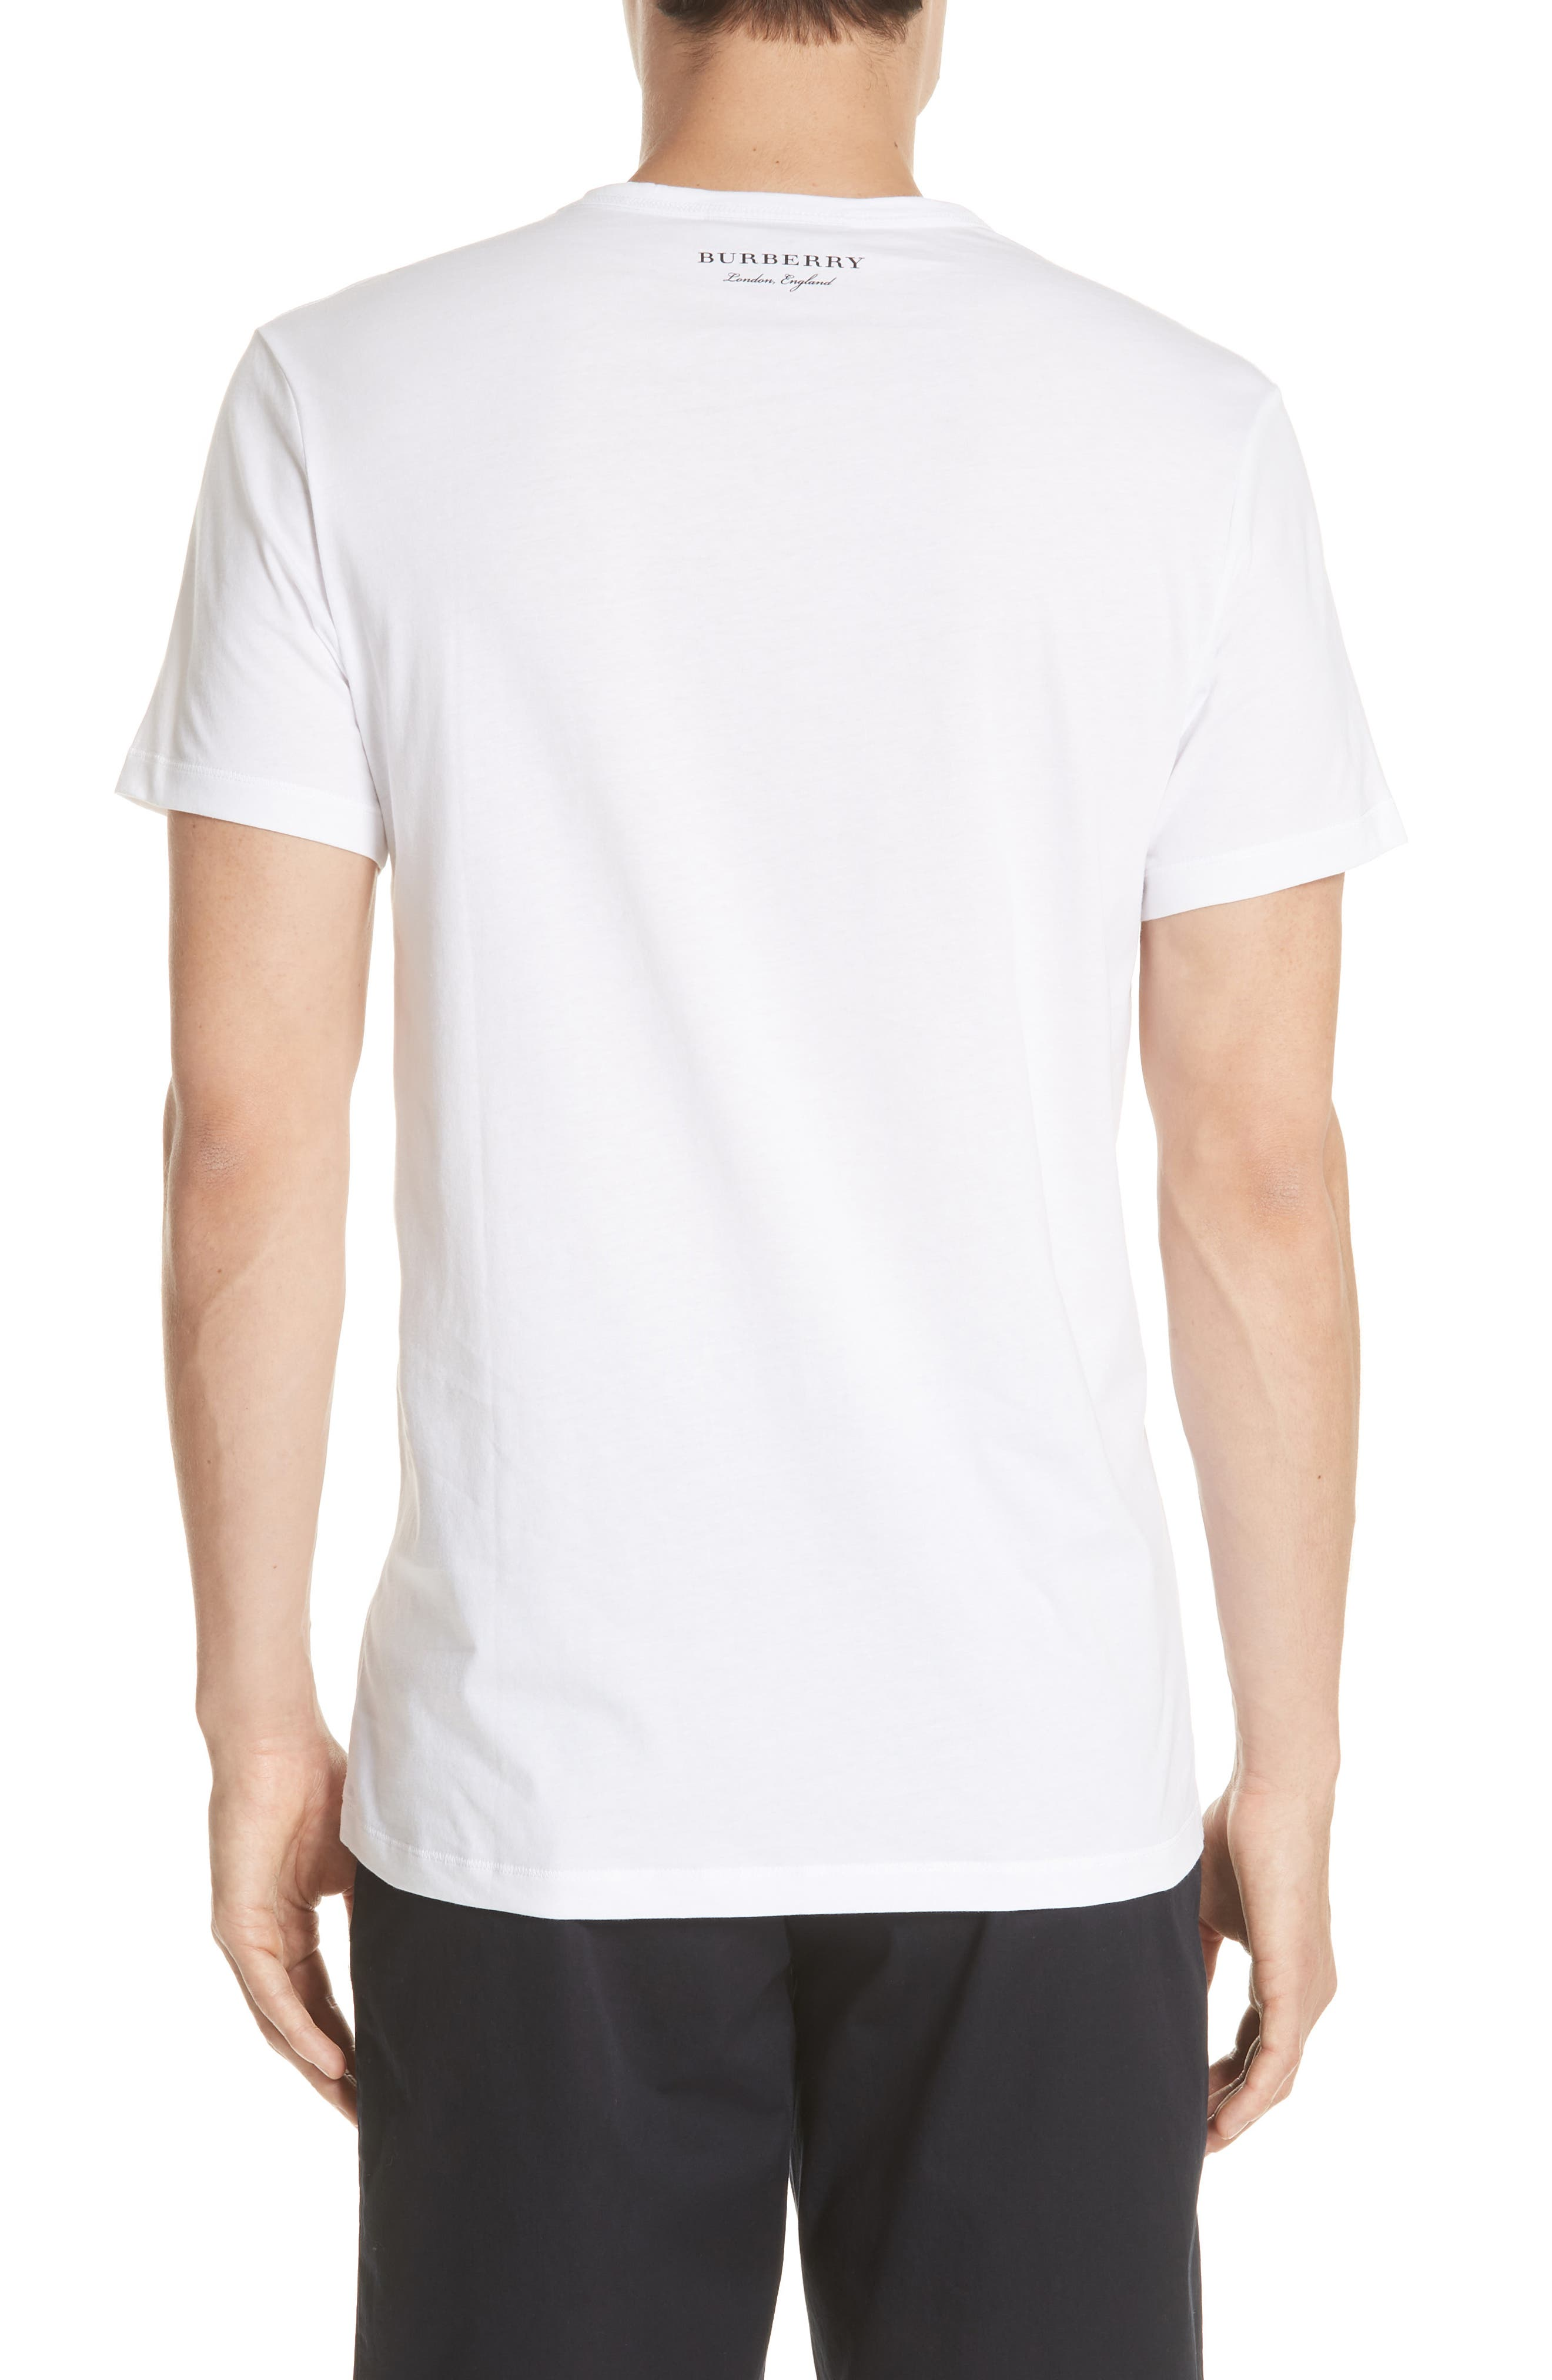 Alternate Image 2  - Burberry Camberley Abith Graphic T-Shirt